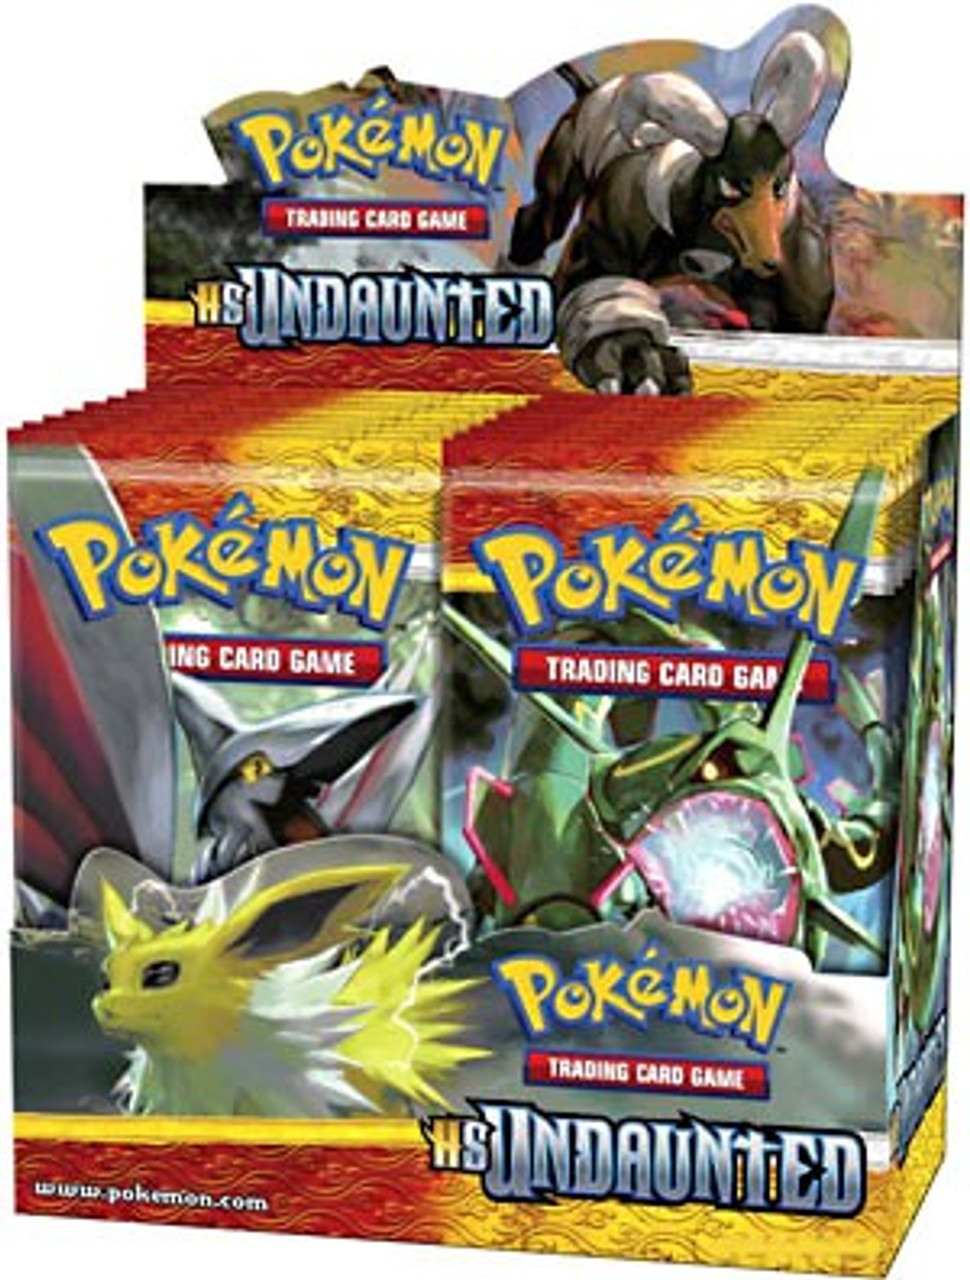 Pokemon HeartGold & Soulsilver Undaunted Booster Box [36 Packs]